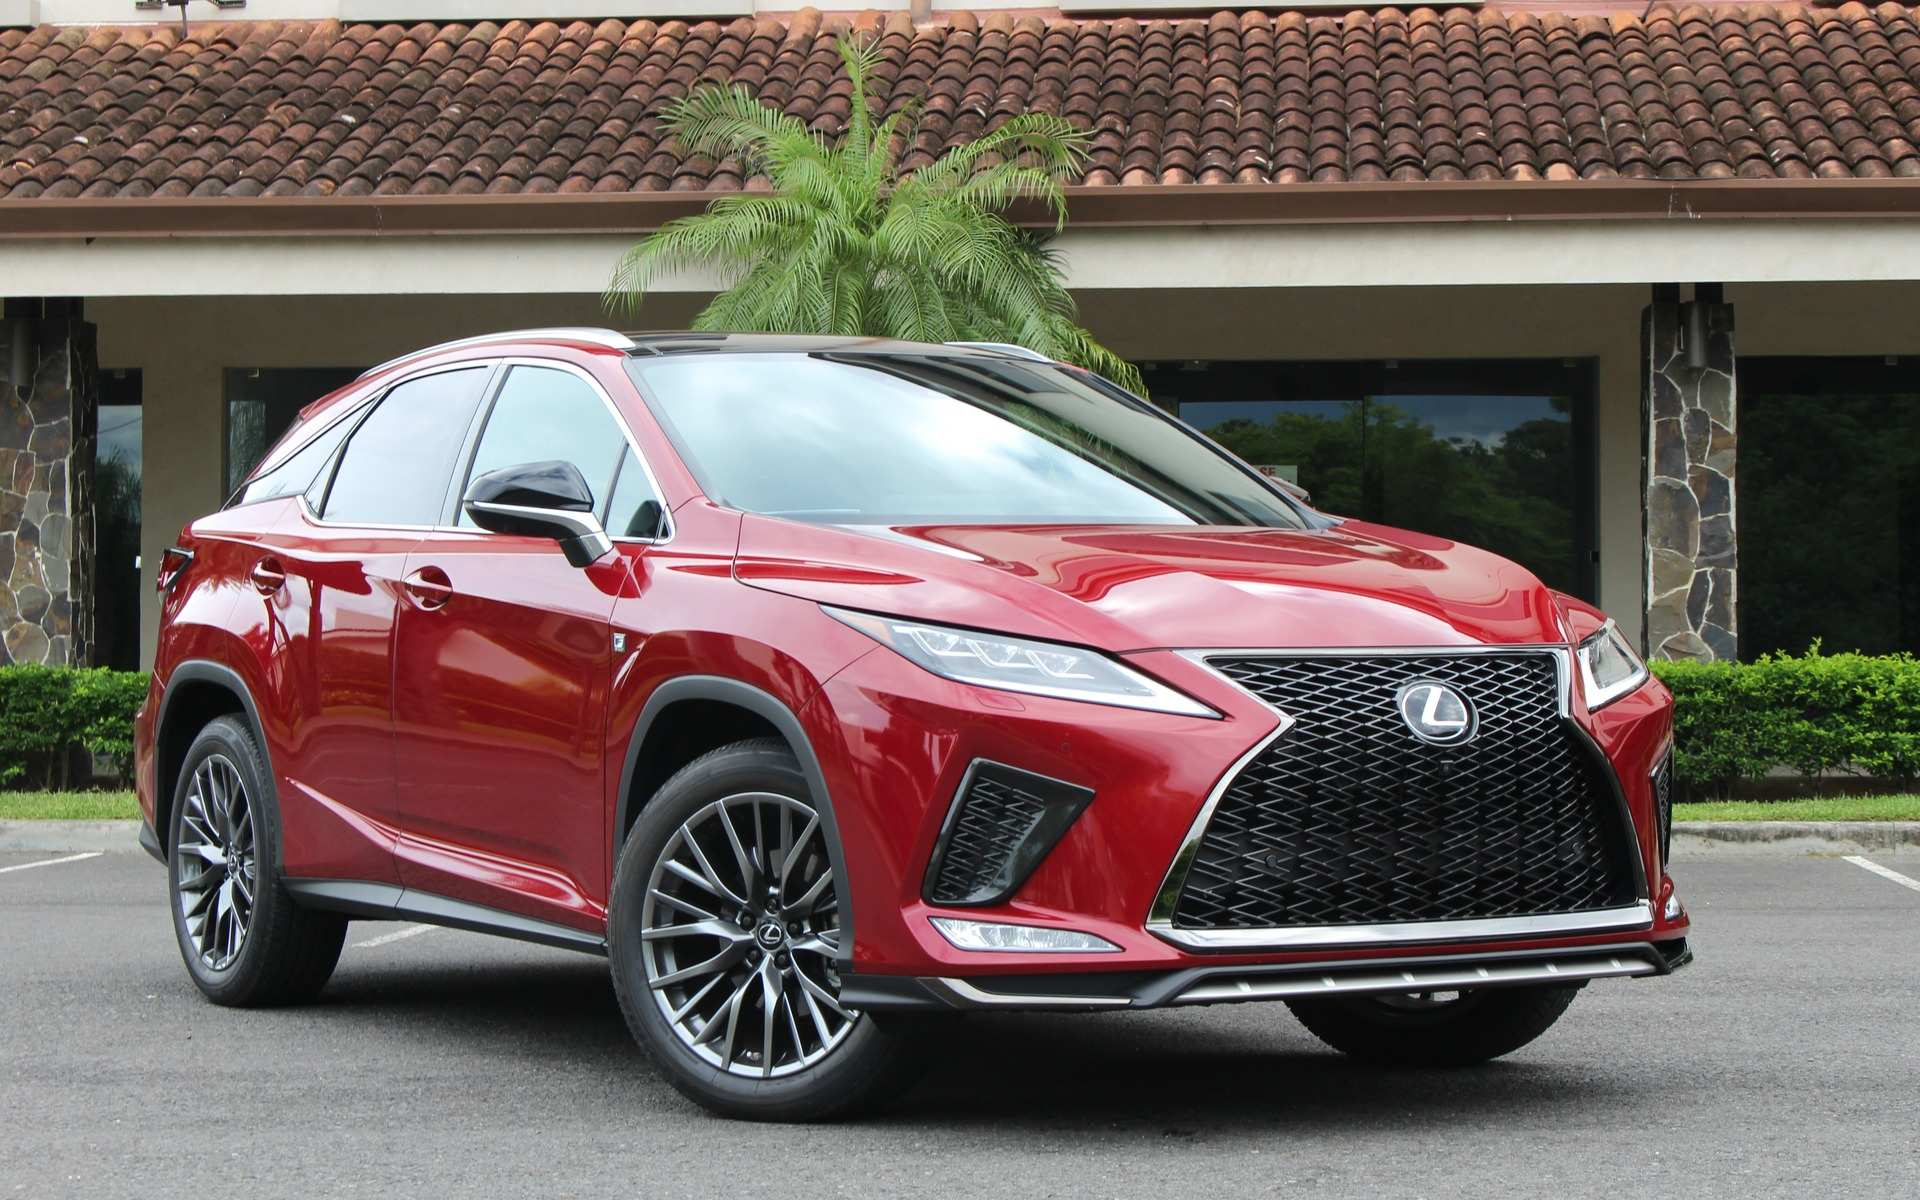 85 New Lexus Rx 350 Changes For 2020 Redesign and Concept by Lexus Rx 350 Changes For 2020